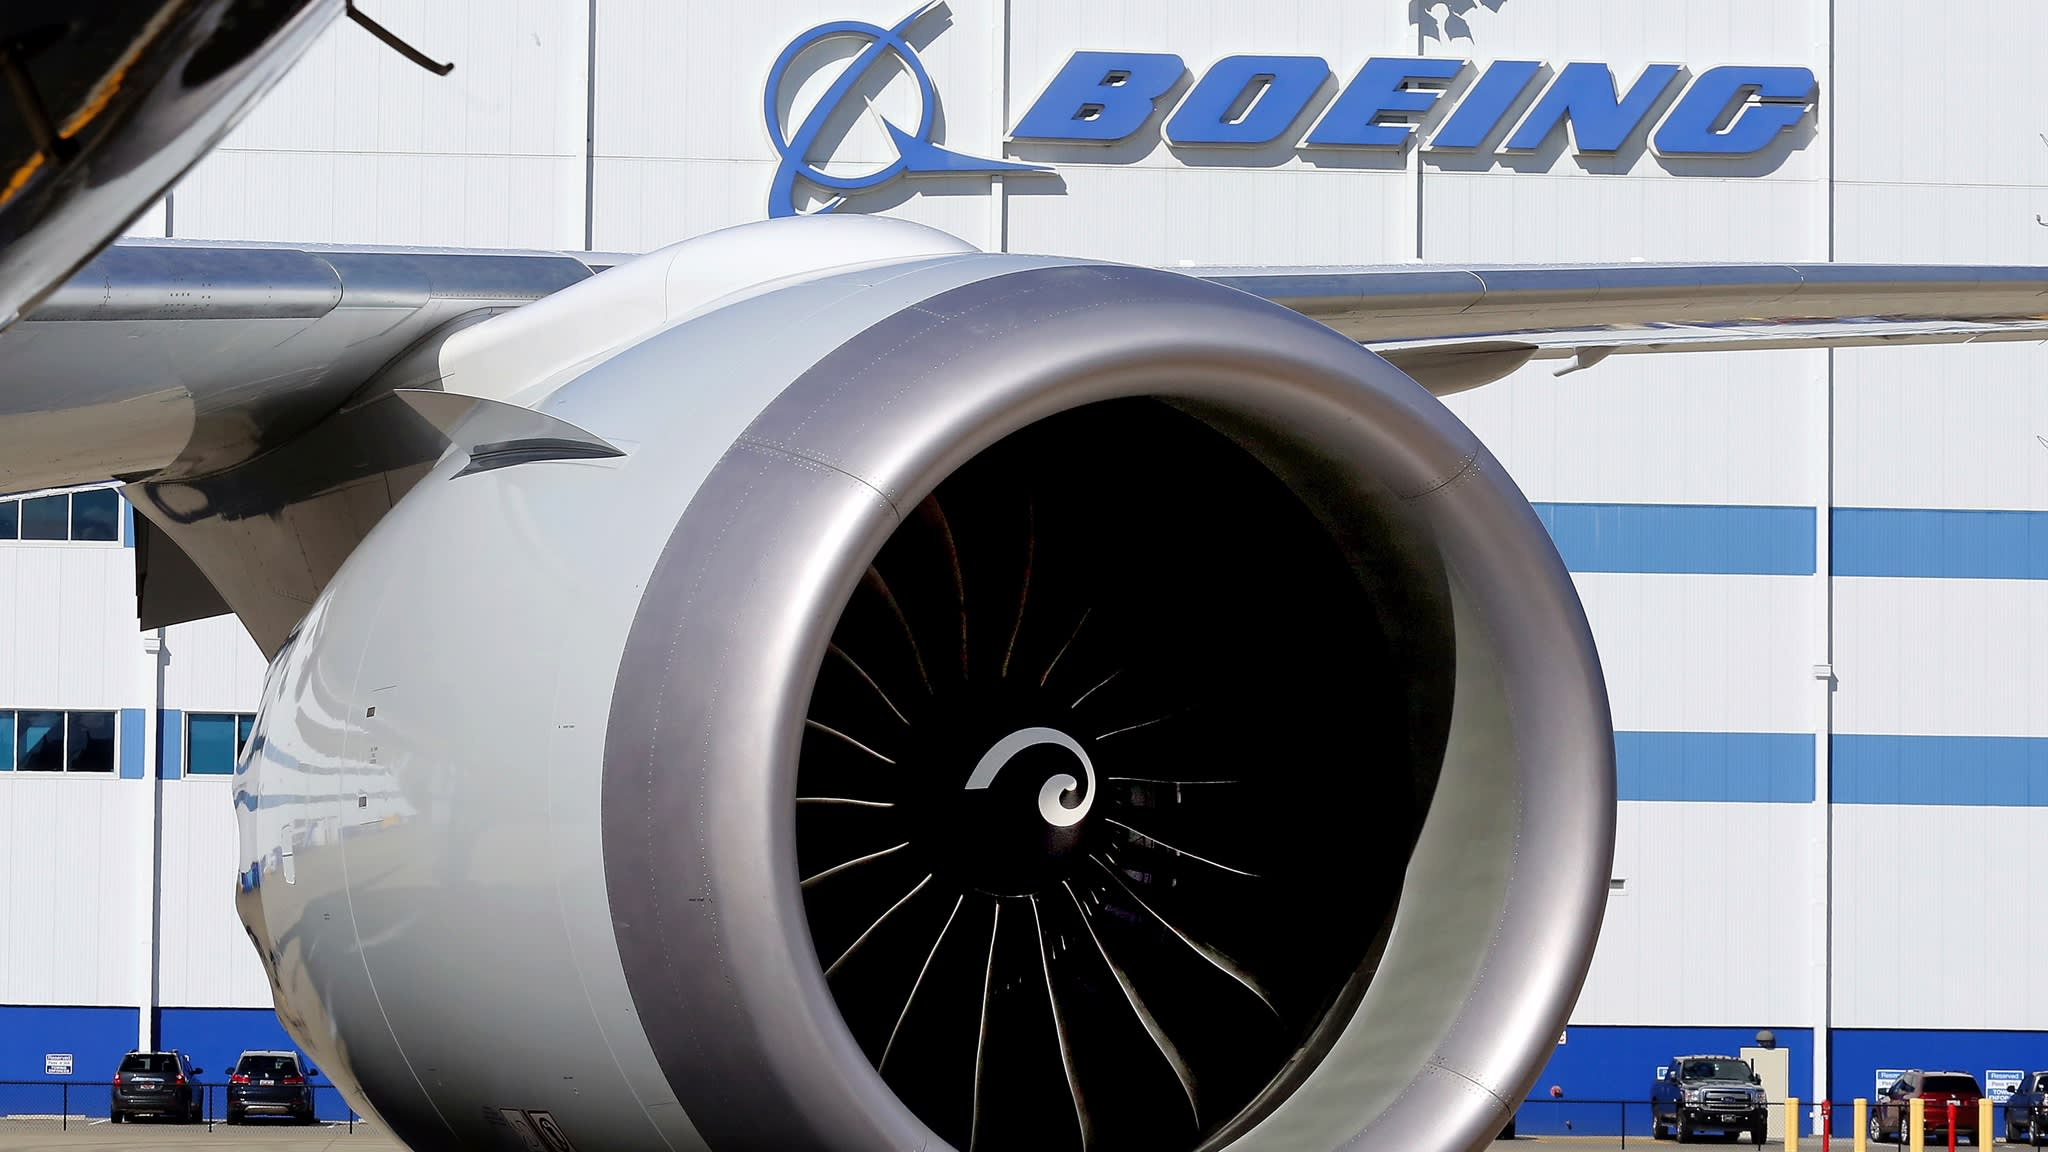 Boeing drops 5% in pre-market after China retaliation